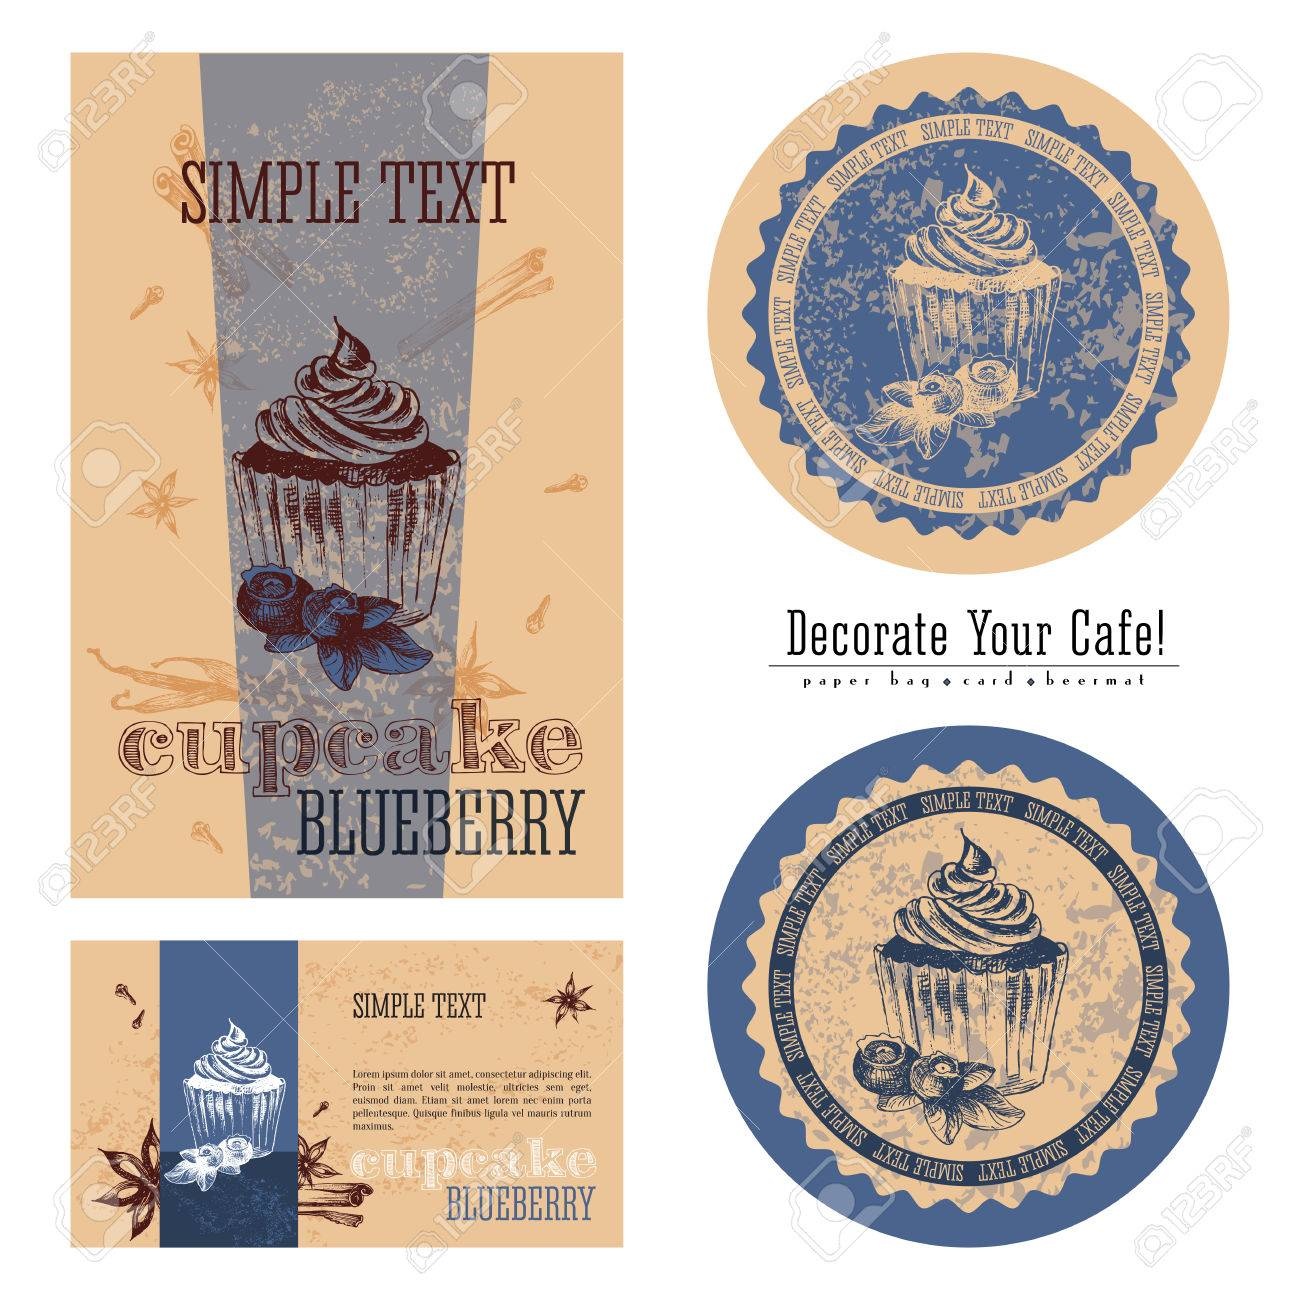 Blueberry Cupcakes, Eco-friendly Packaging Design And Execution ...